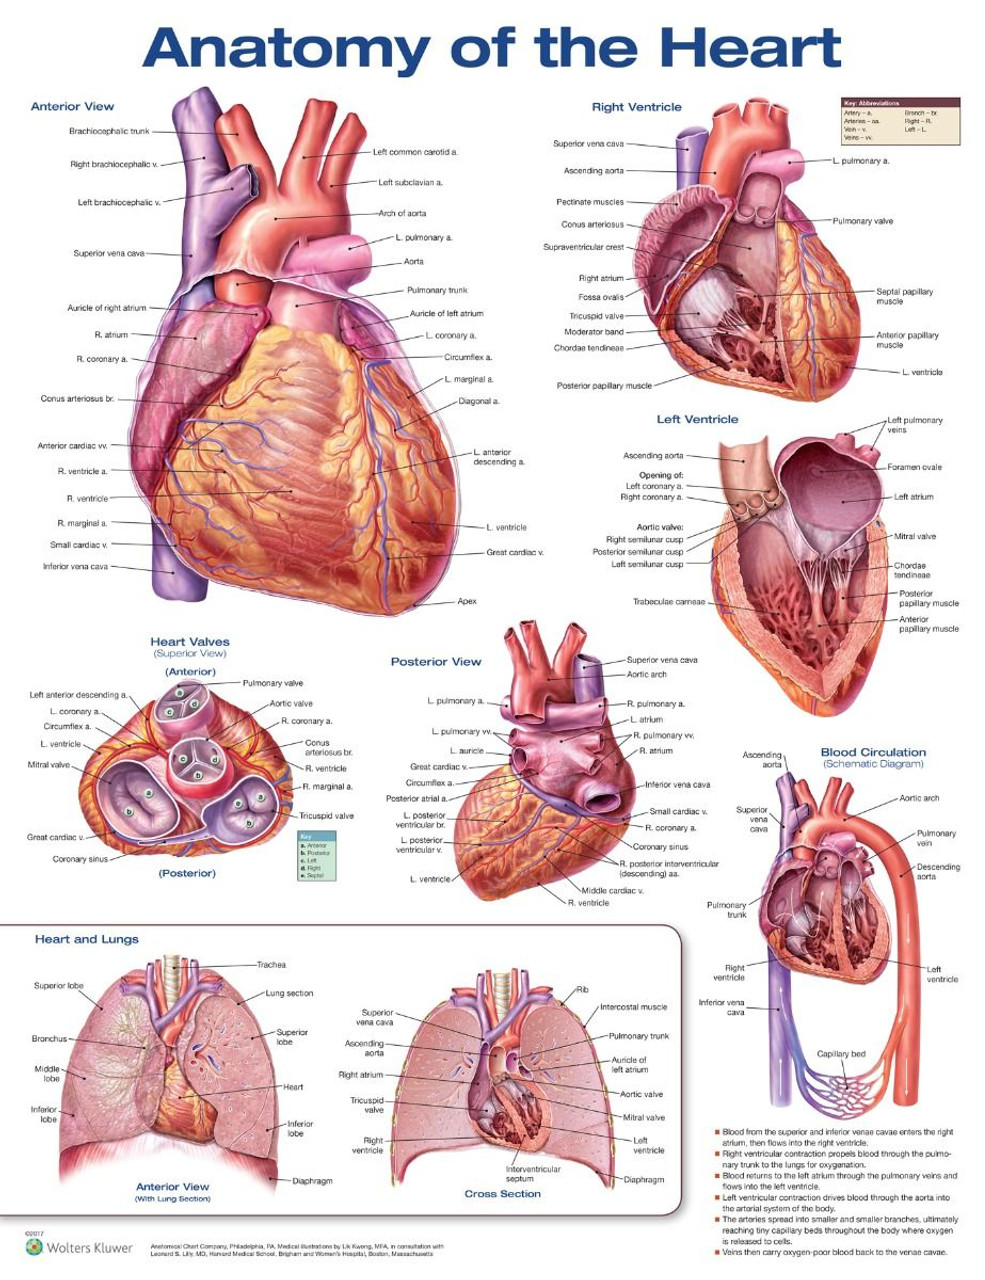 Anatomy of the Heart 3rd ed